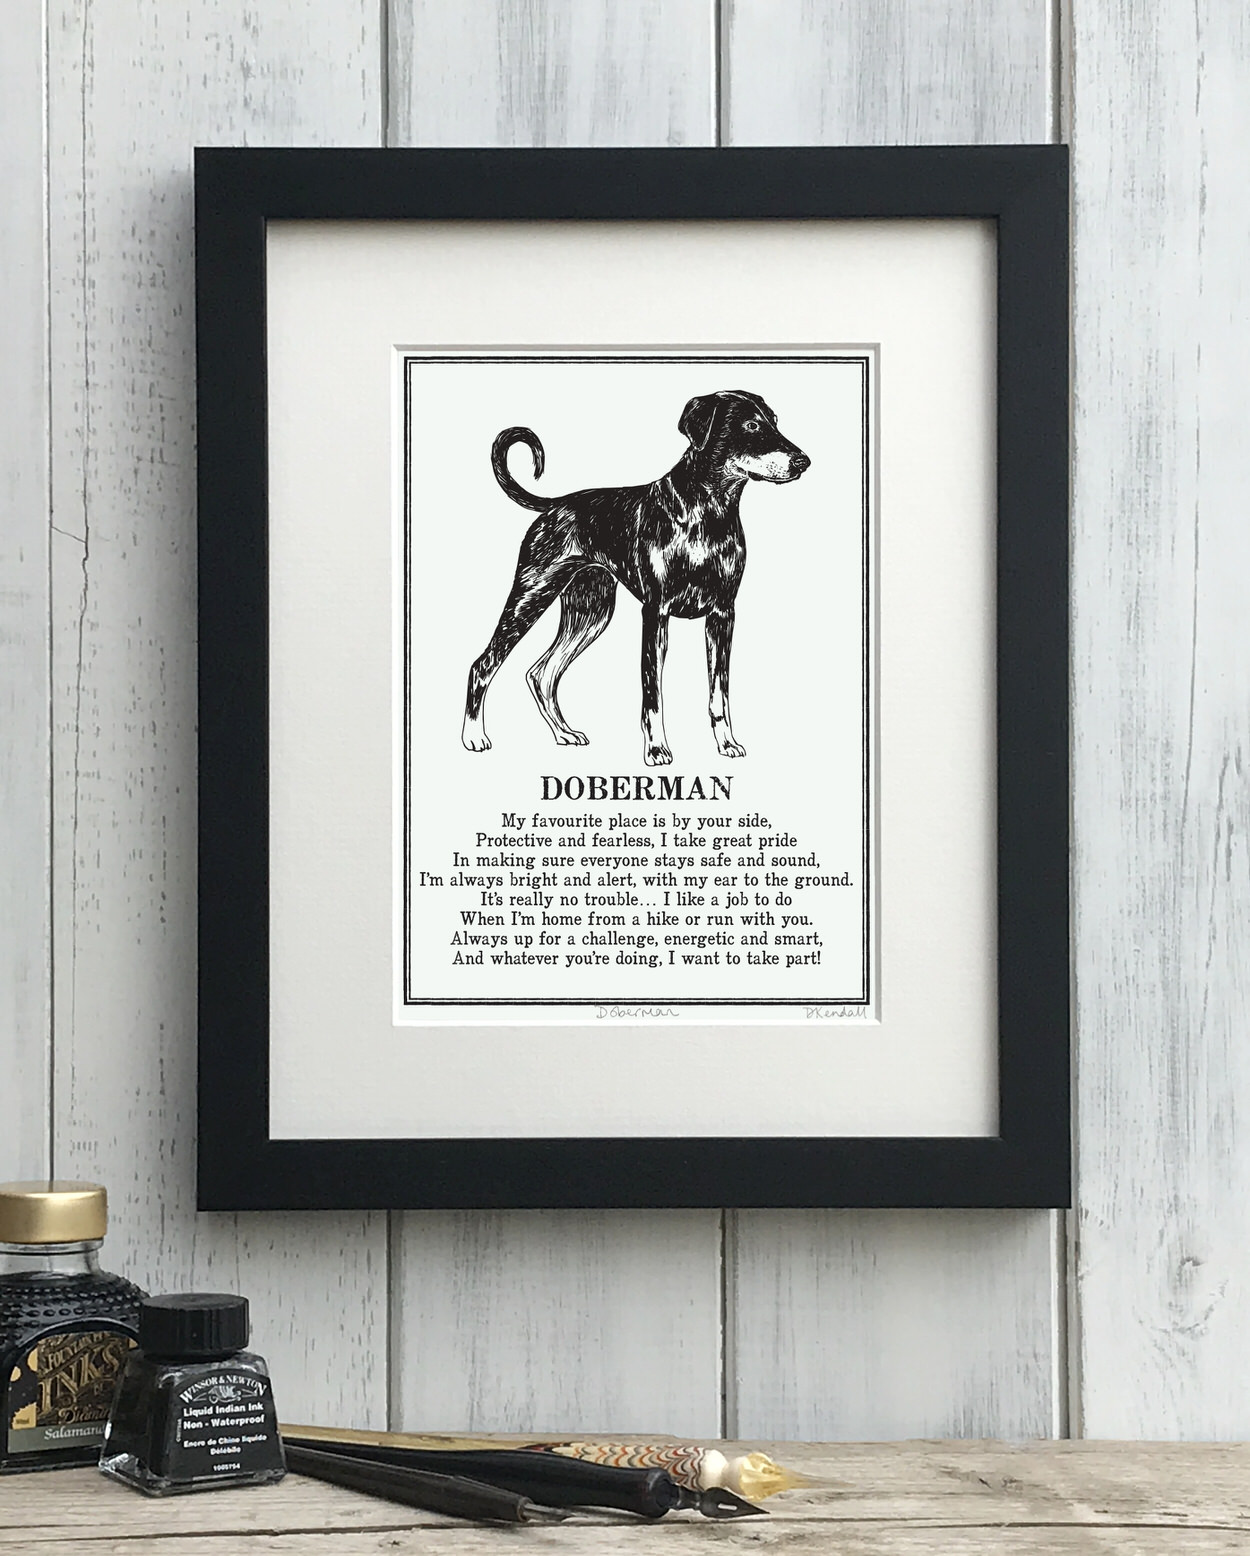 Doberman print illustrated poem by The Enlightened Hound